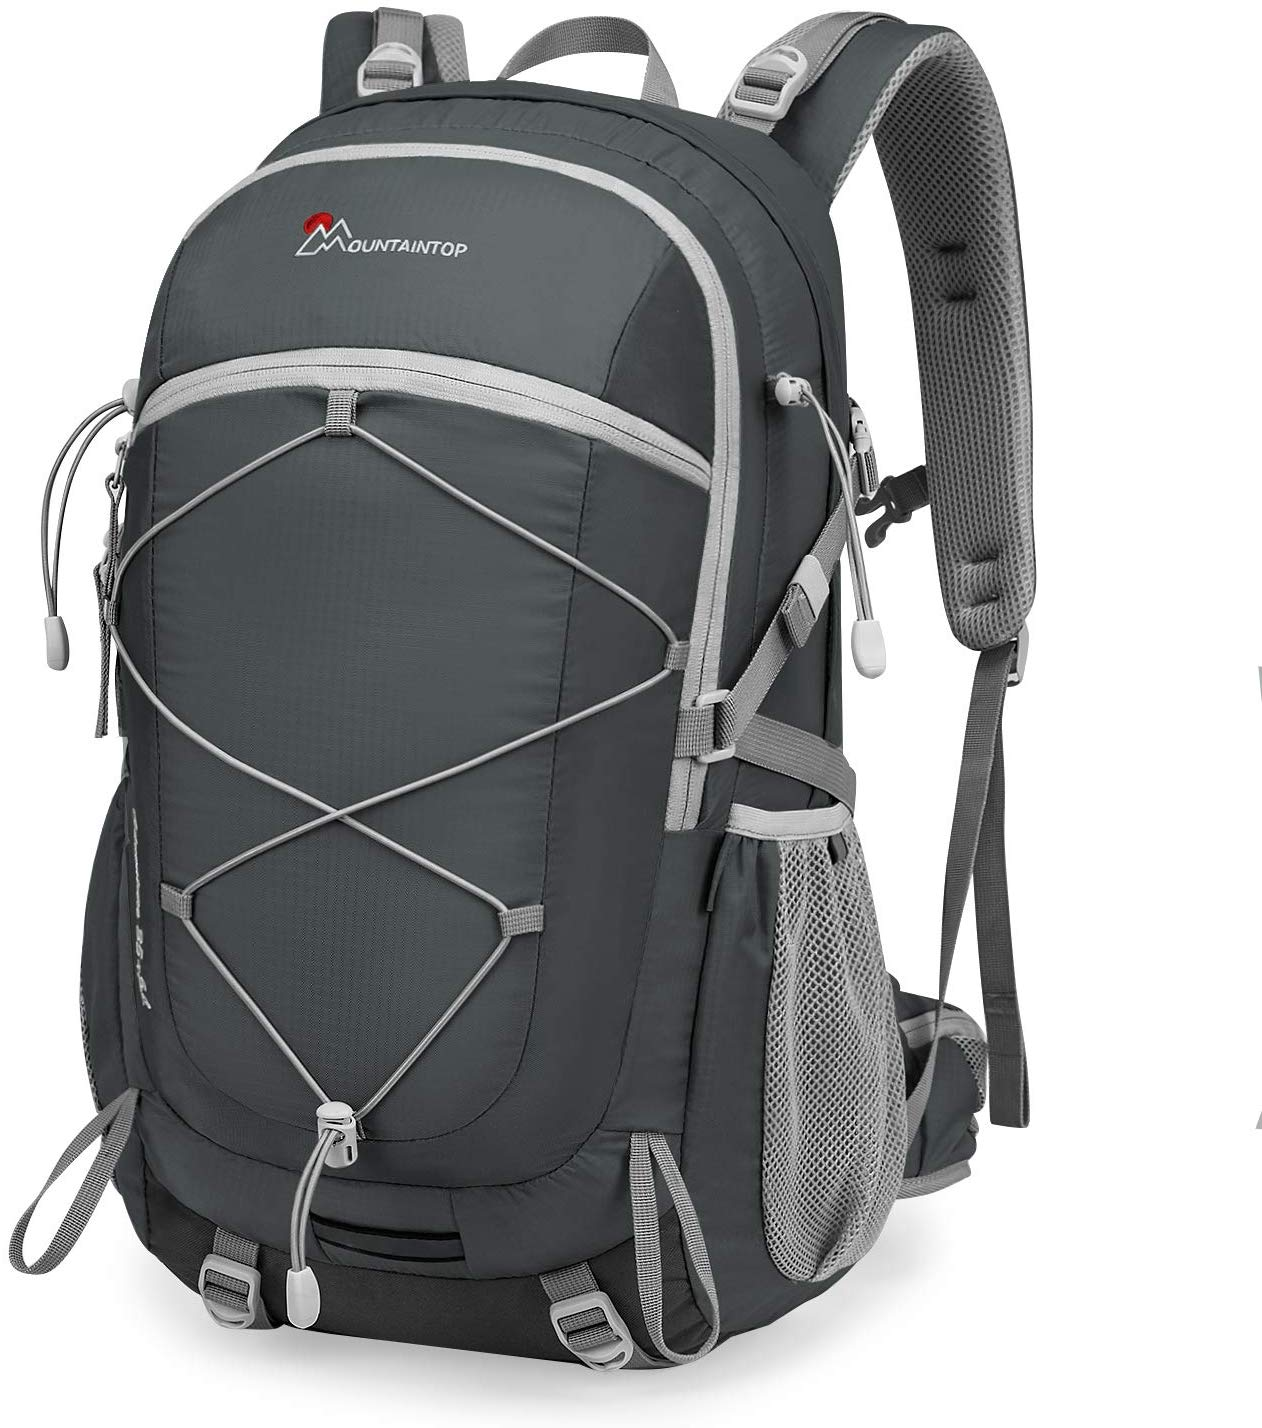 Mountaintop 40L Unisex Hiking Backpack